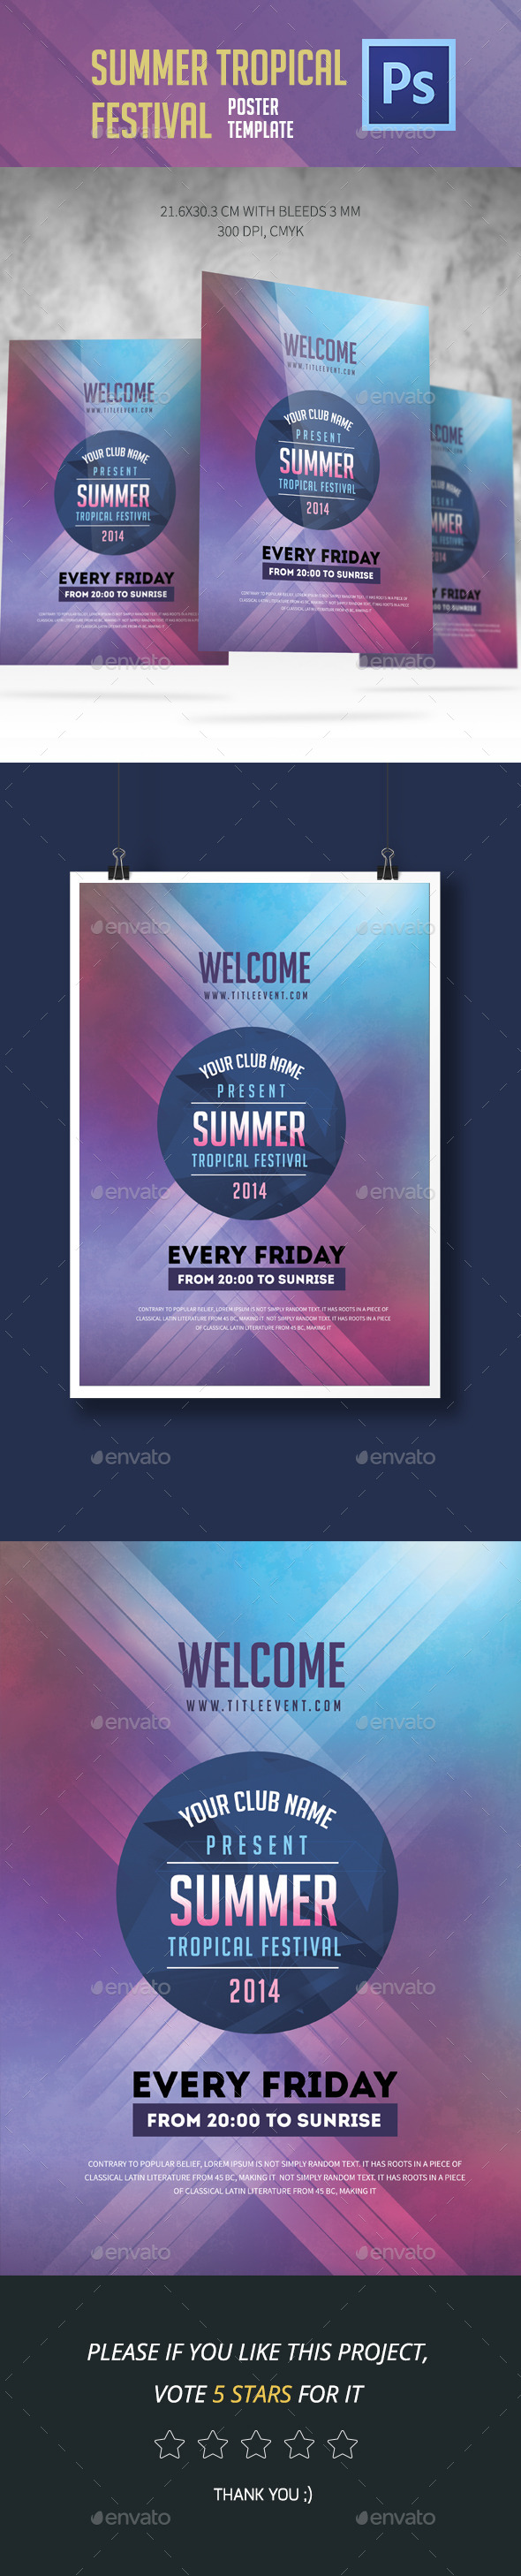 Summer Tropical Festival Flyer - Clubs & Parties Events